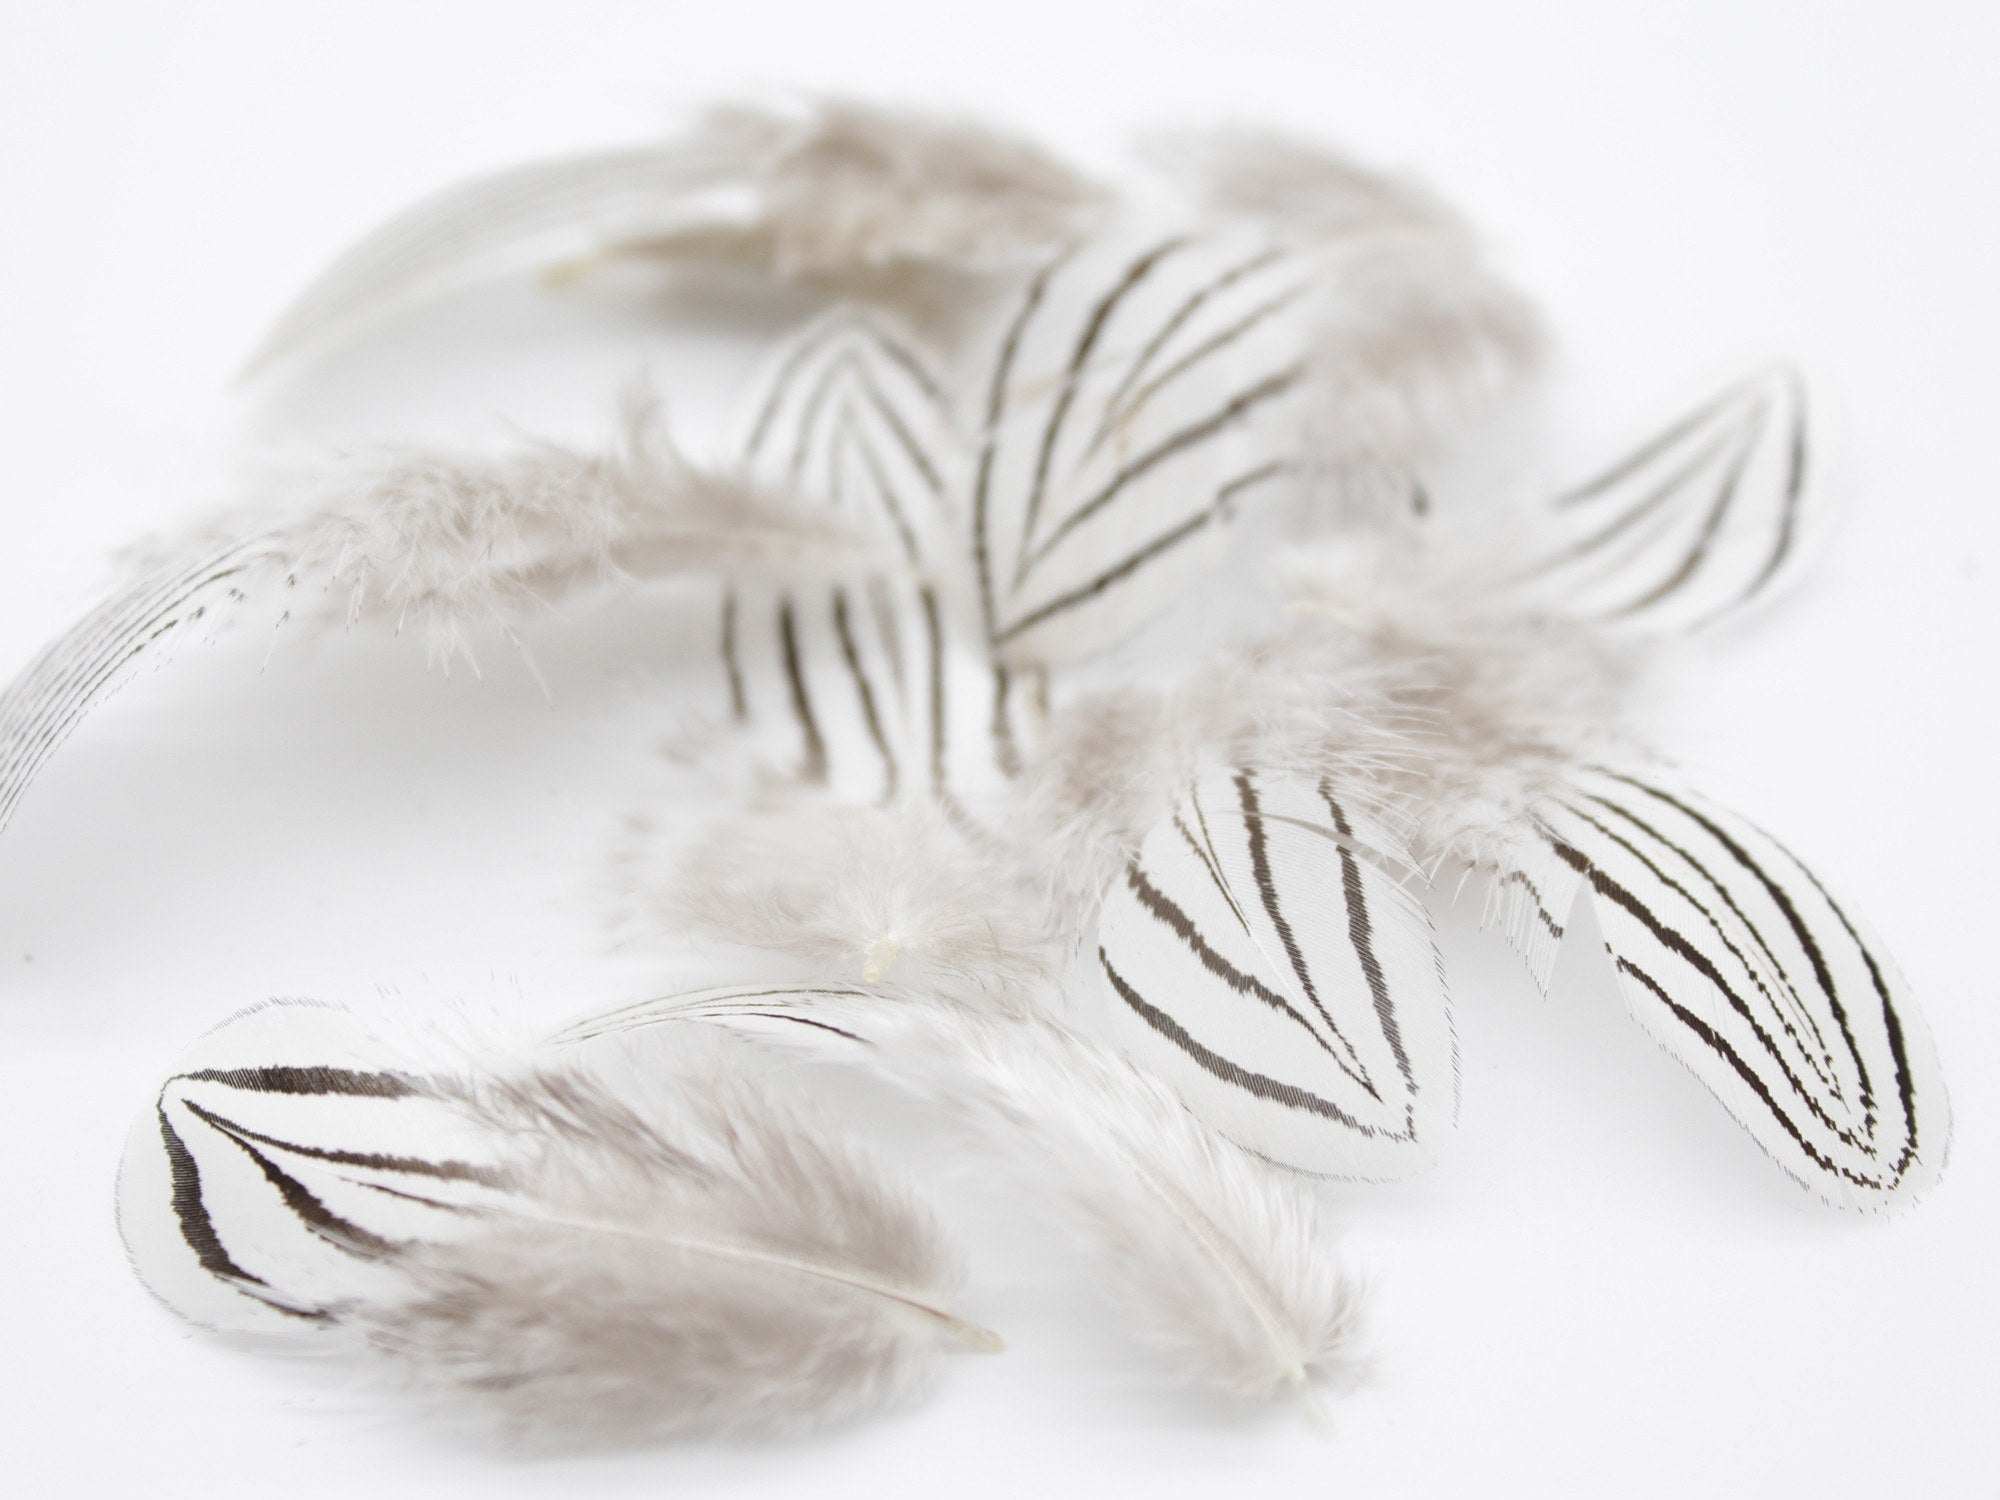 How to clean pheasant feathers - Silver Pheasant Black White Plumage Feathers